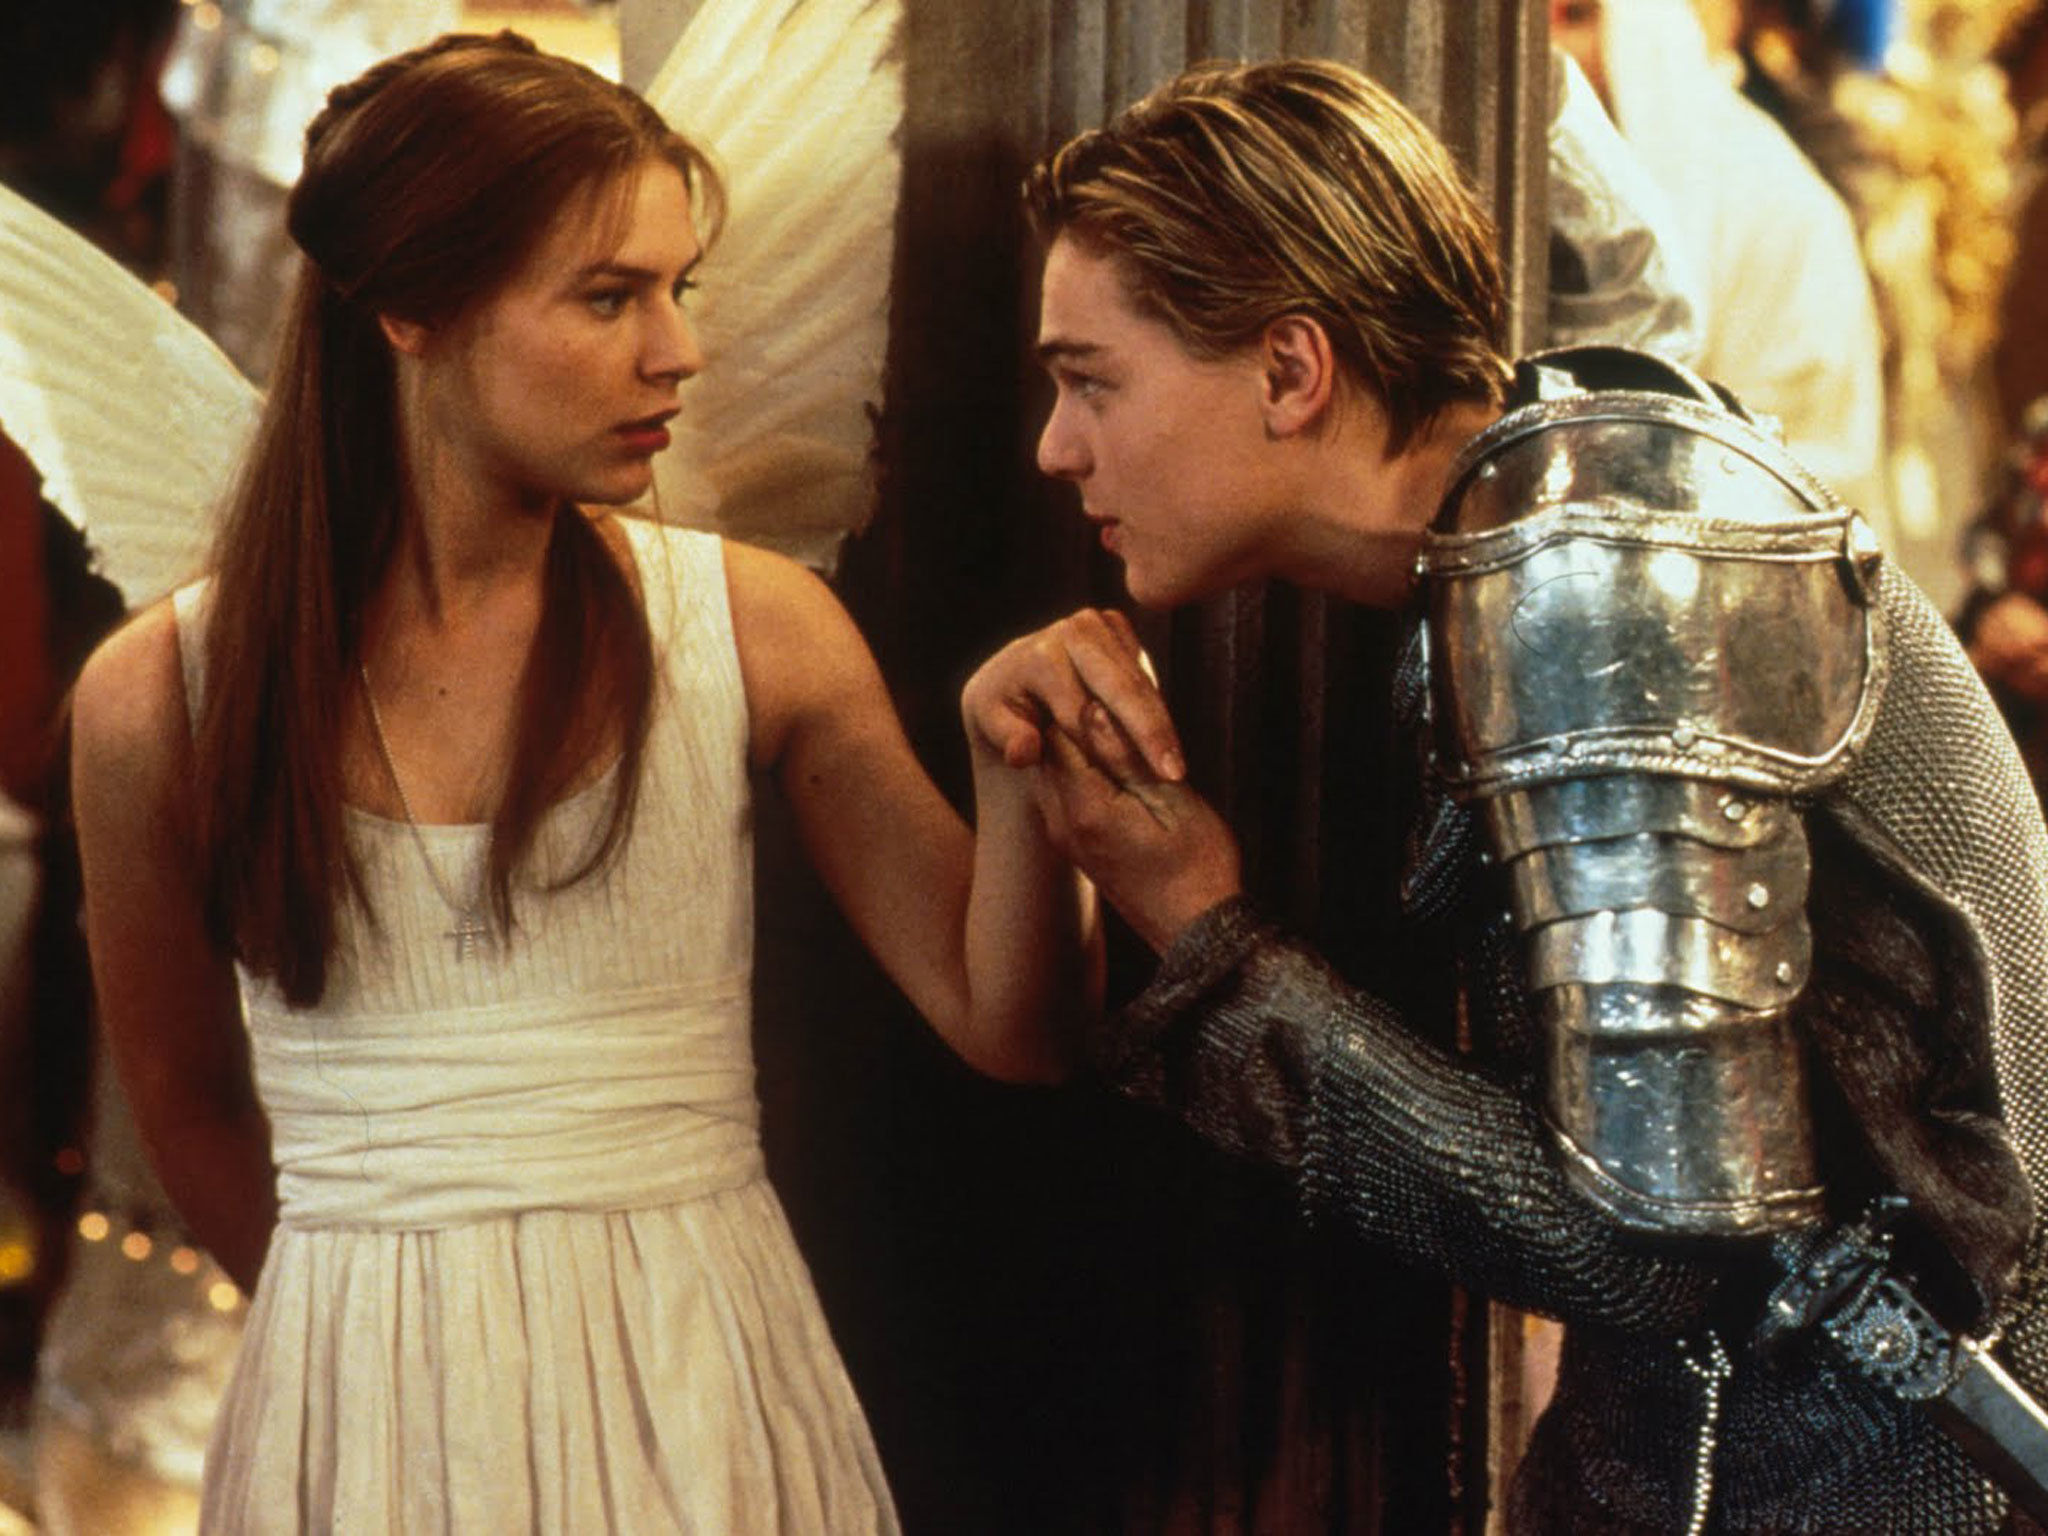 Watch one of the 100 best romantic movies